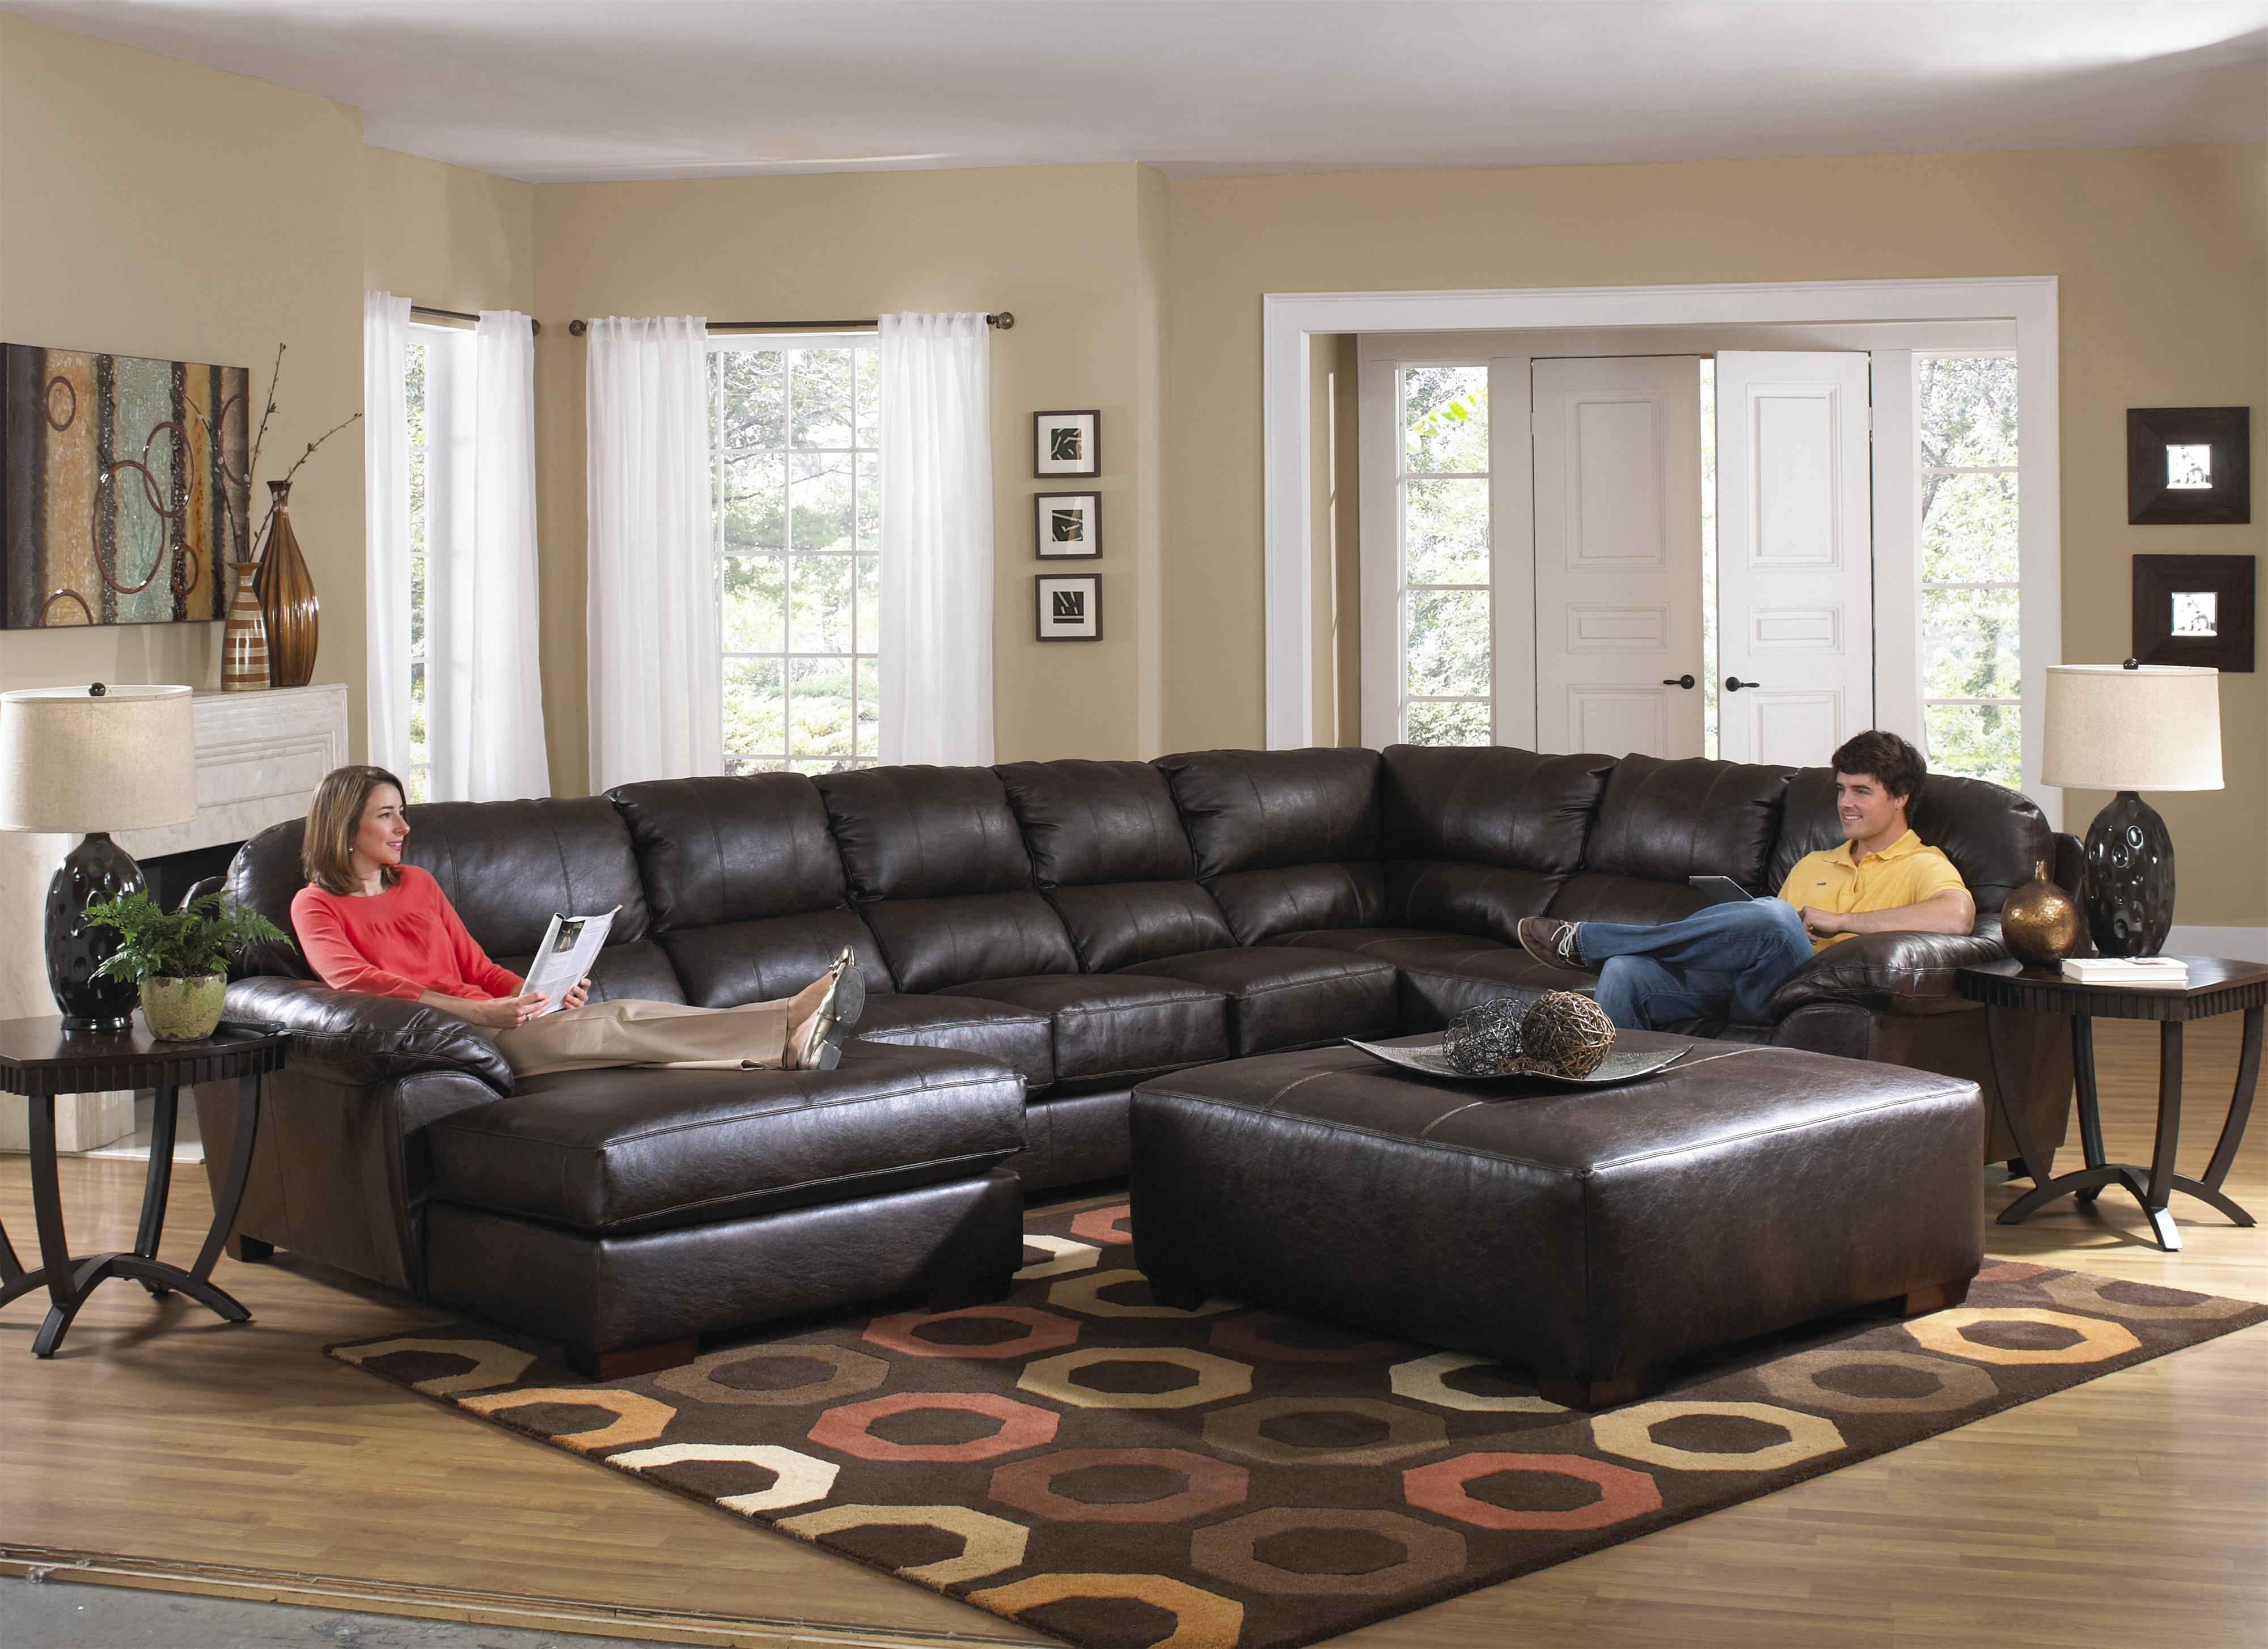 Oversized Couches Ashley Furniture Extra Deep Couch Oversized Throughout Most Recent Huge Sofas (View 11 of 15)